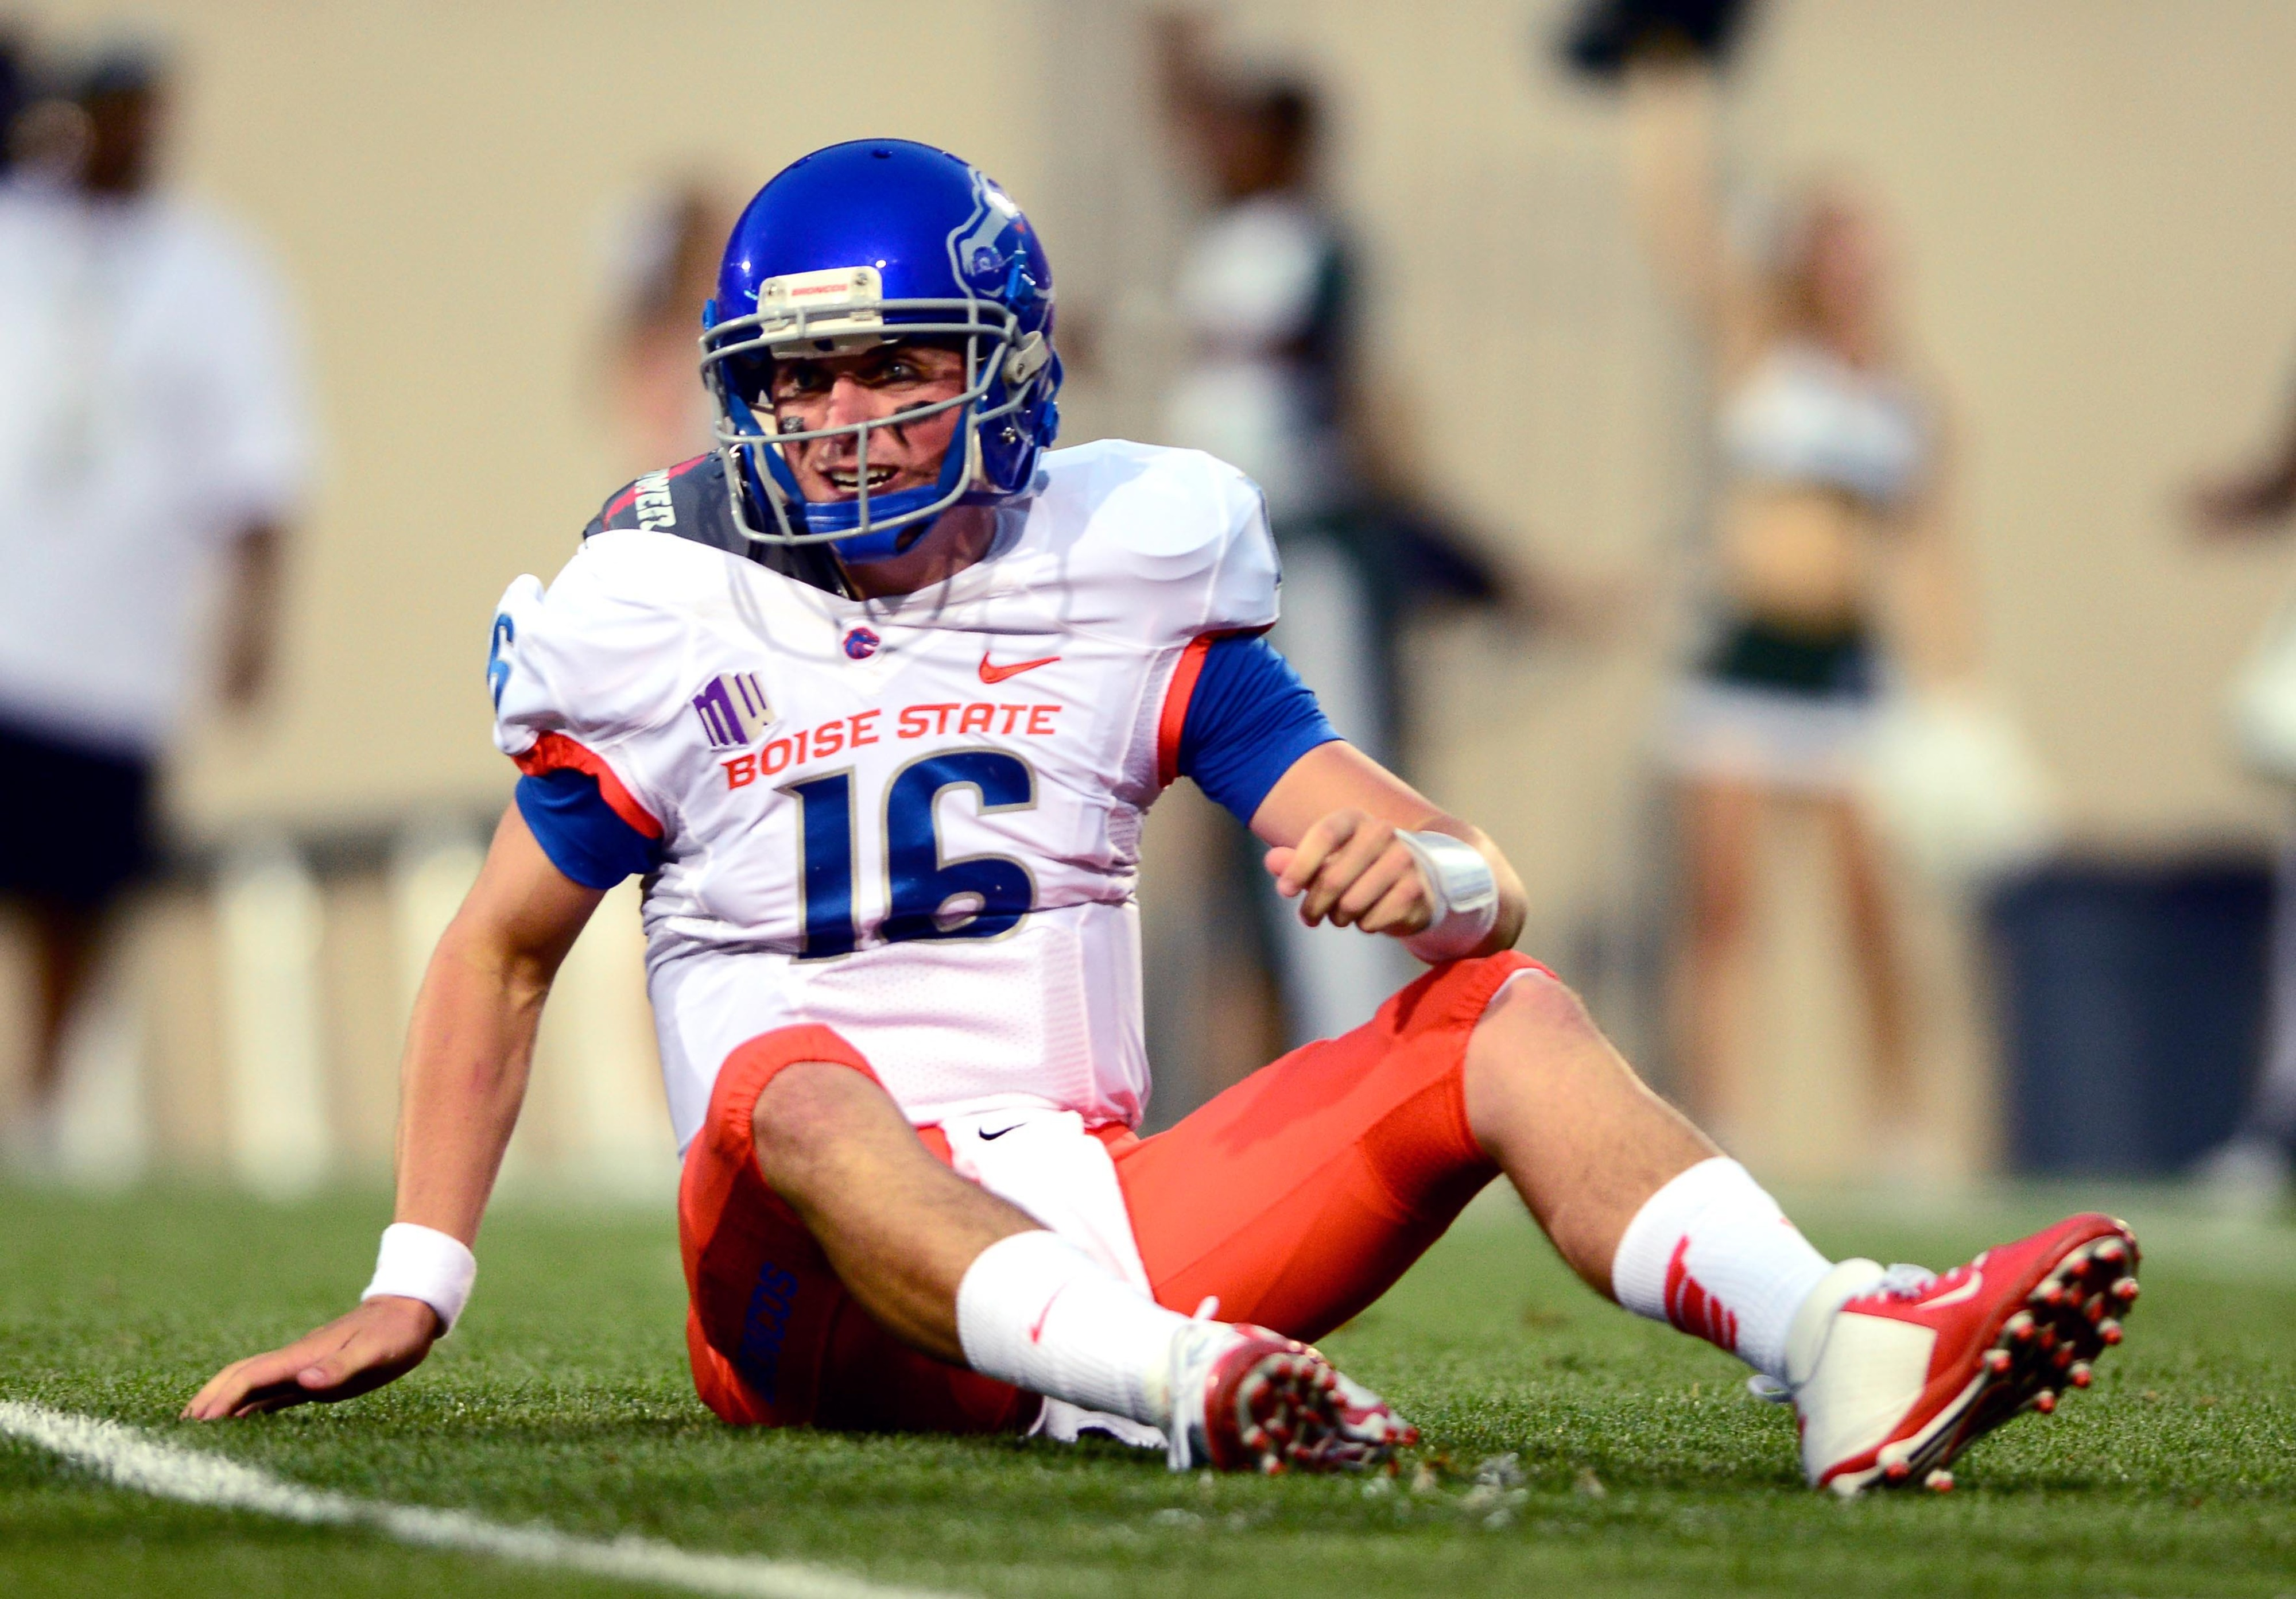 Boise State took a fall over the weekend making room for a new Top Five.